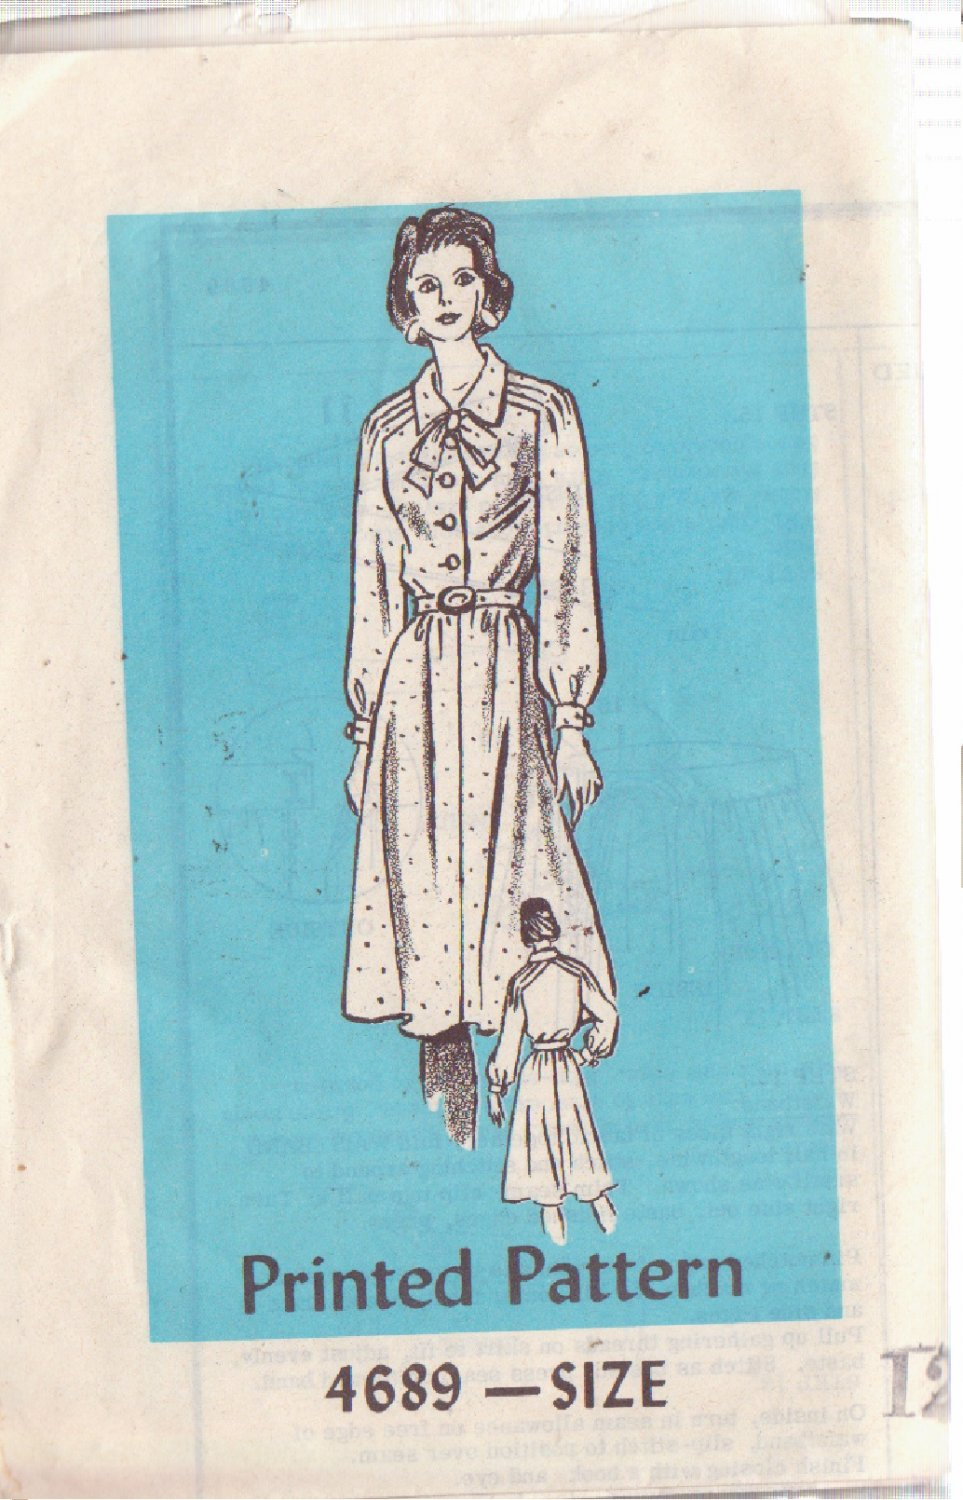 VINTAGE PRINTED PATTERN 4689 MISSES' DRESS SIZE 12